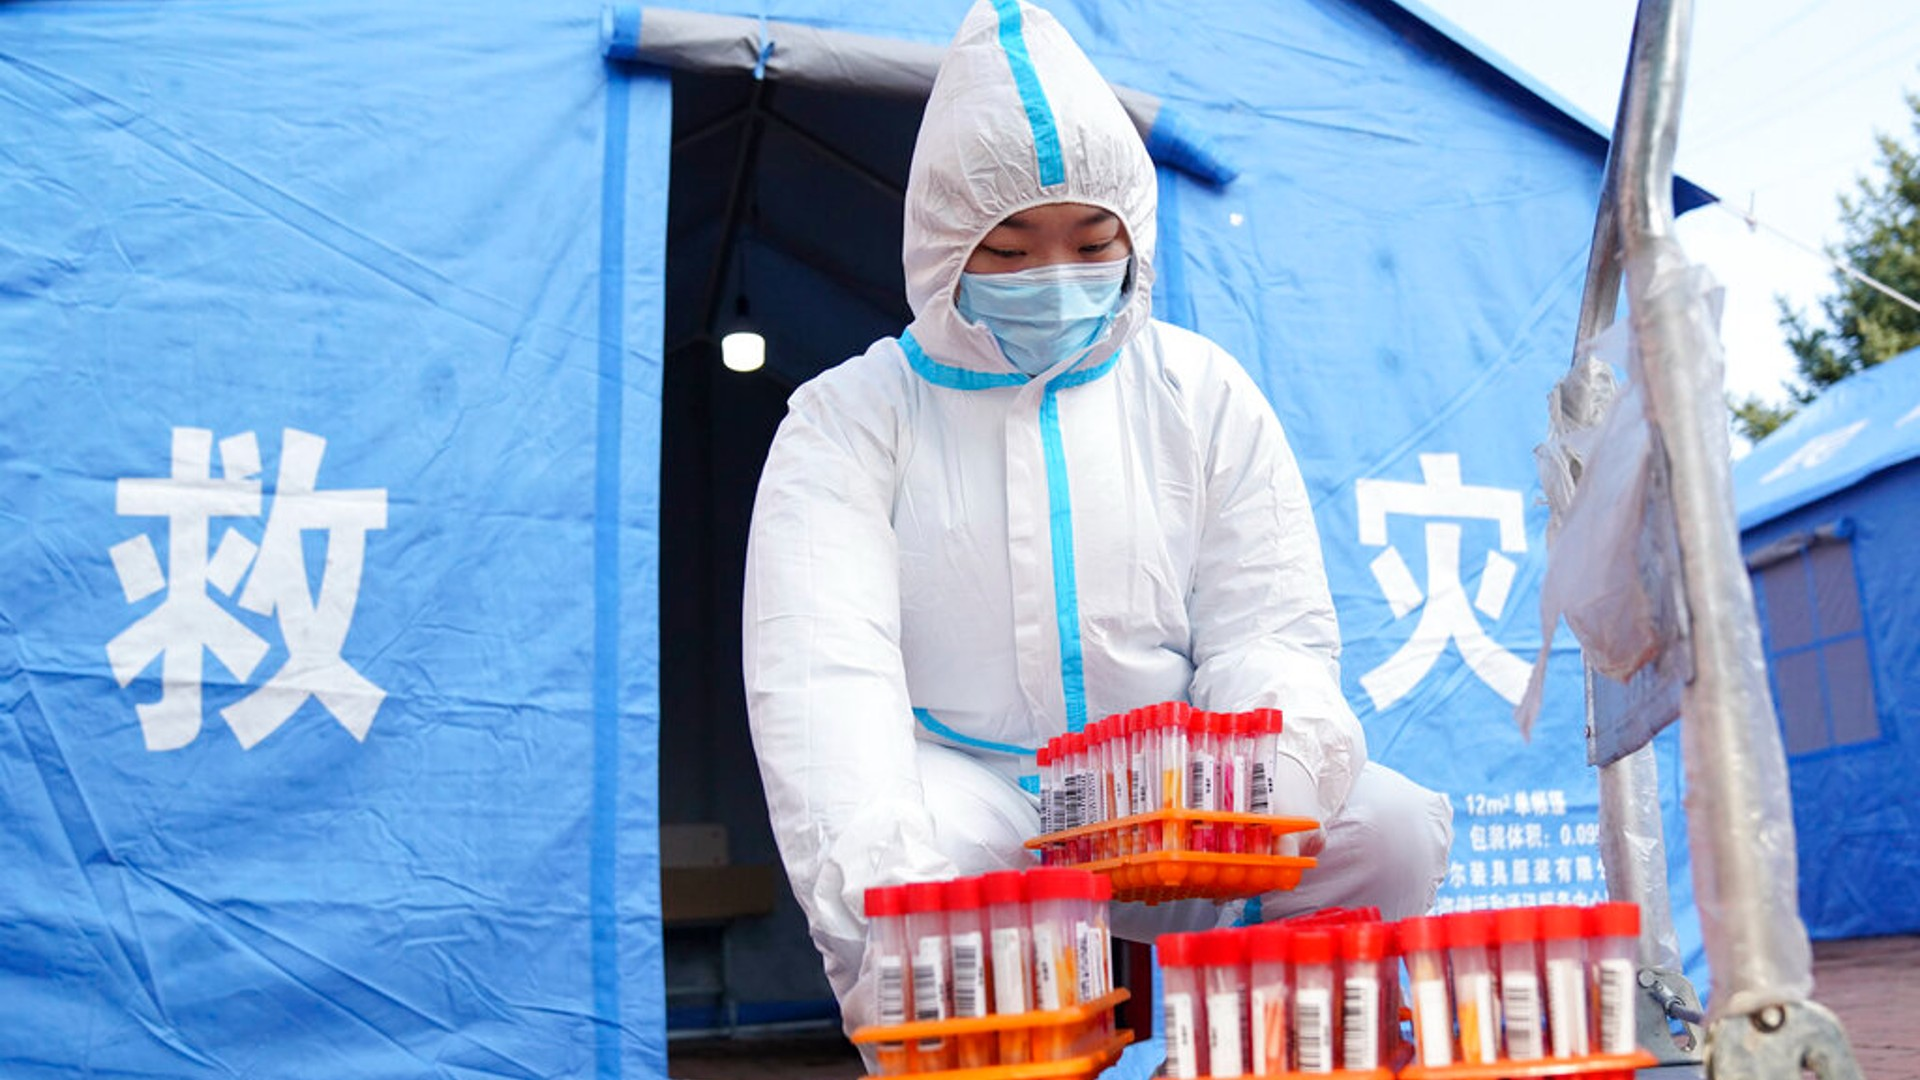 In this photo released by China's Xinhua News Agency, a worker in protective clothing handles COVID-19 test samples in Bayan County of Harbin city in northeastern China's Heilongjiang Province, Monday, Sept. 27, 2021. (Wang Jianwei/Xinhua via AP)